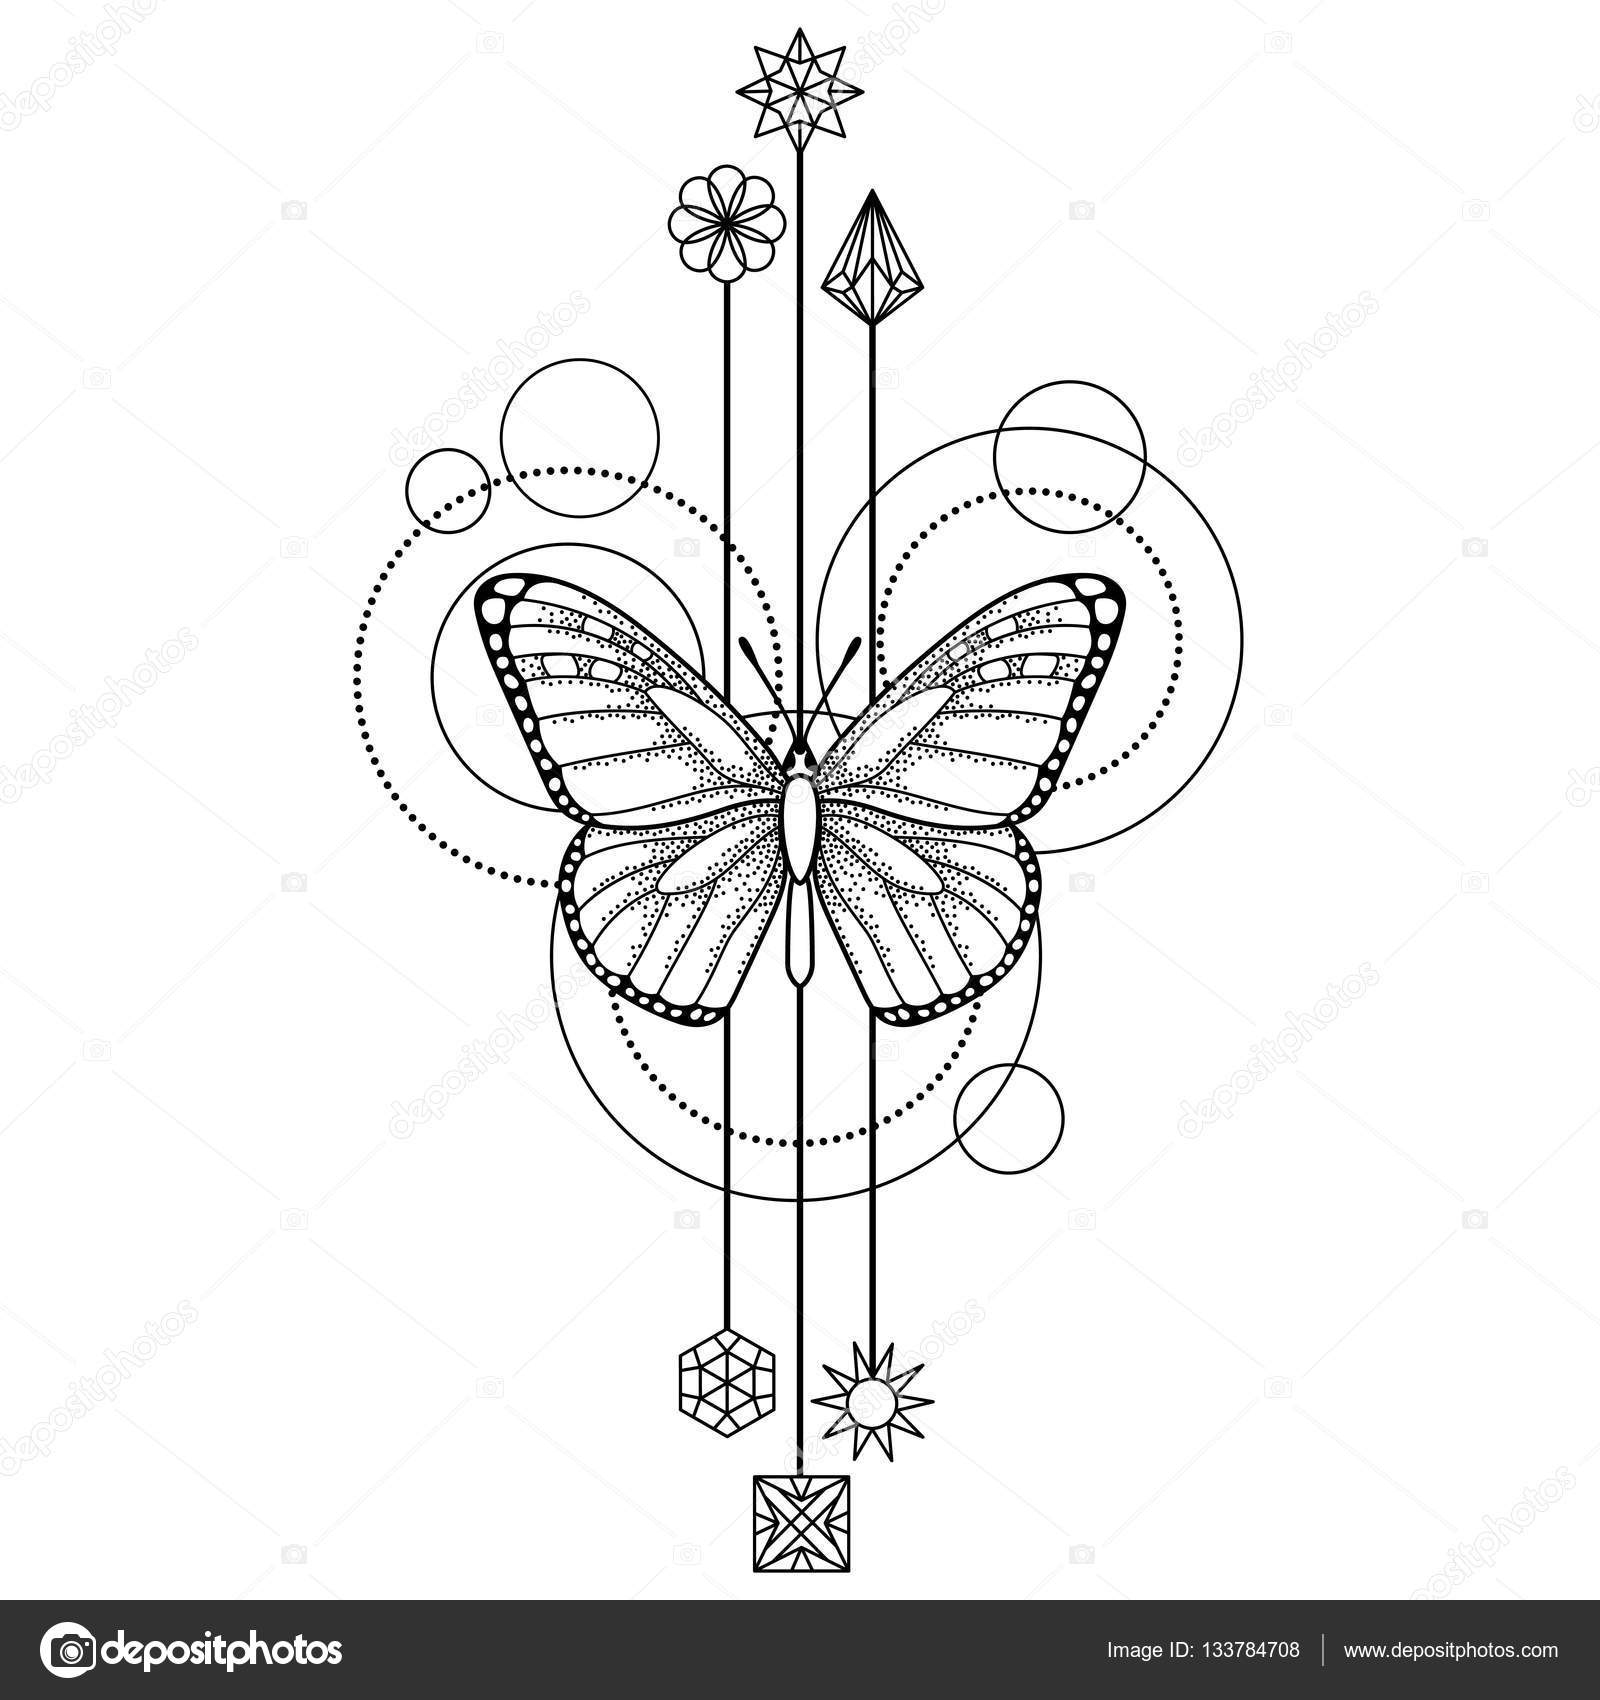 Abstract butterfly symbol stock vector kronalux 133784708 abstract butterfly symbol stock vector biocorpaavc Image collections